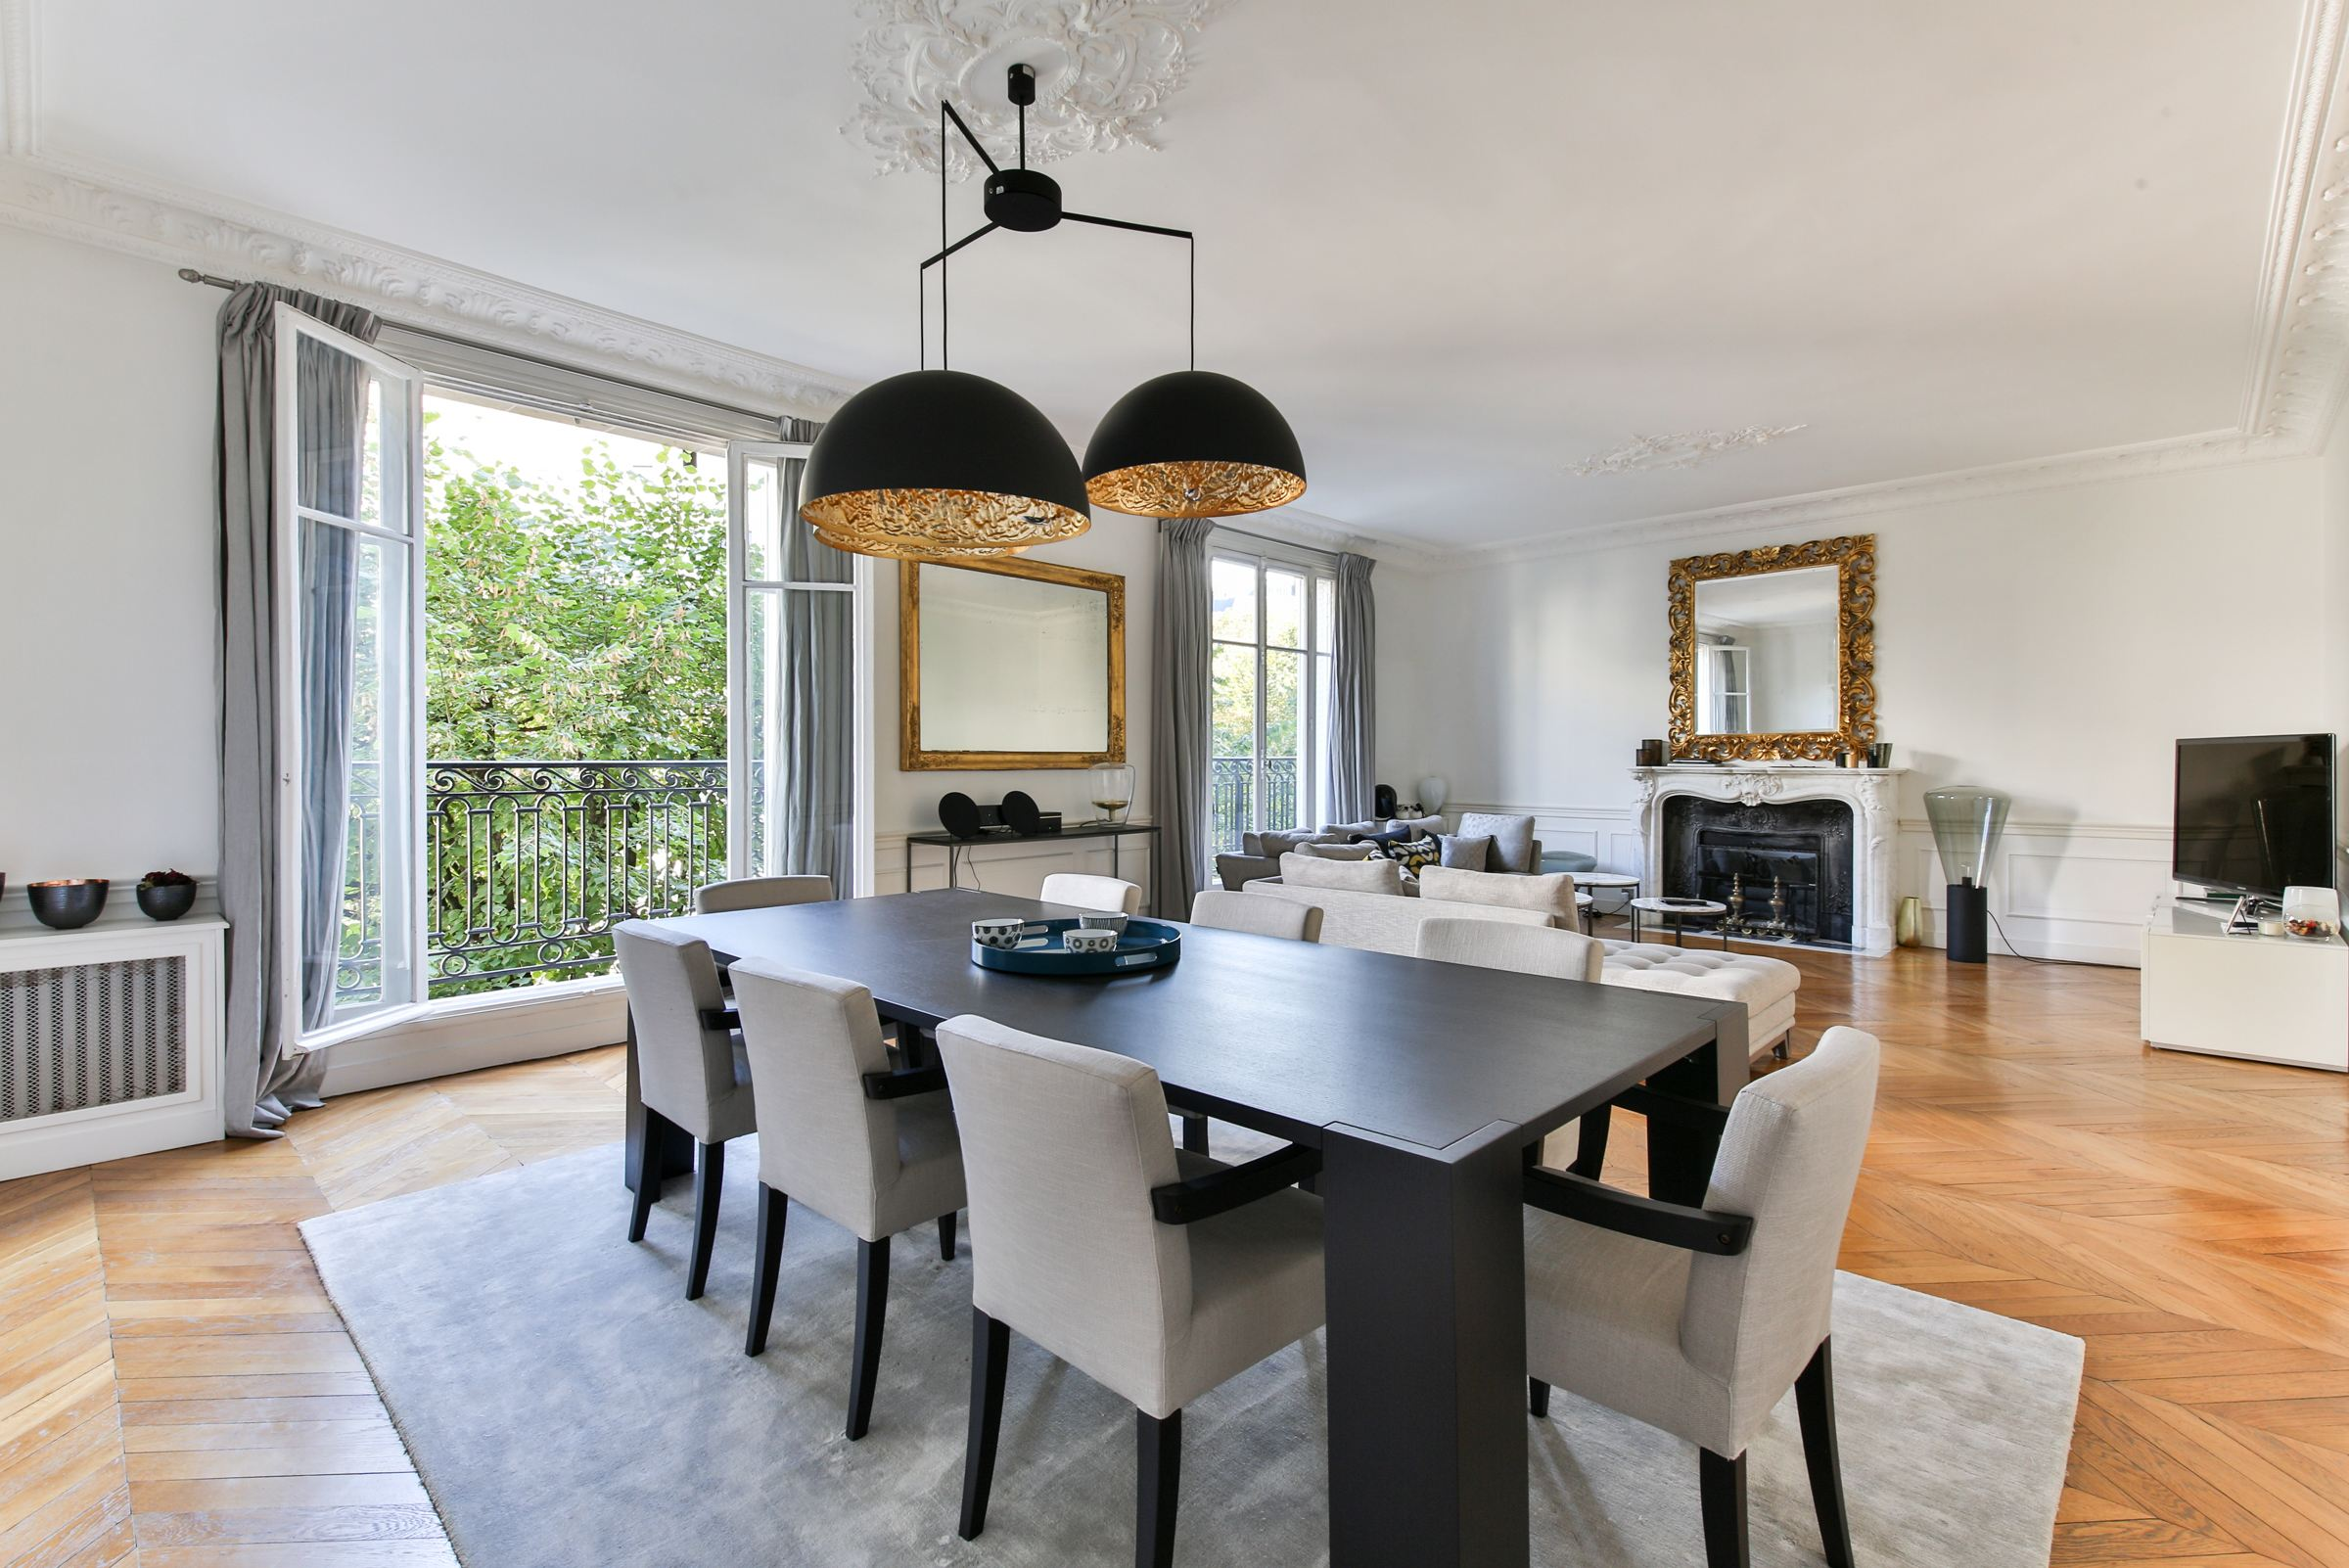 Property For Sale at Neuilly - Pasteur sector. Apartment. Luxury amenities.